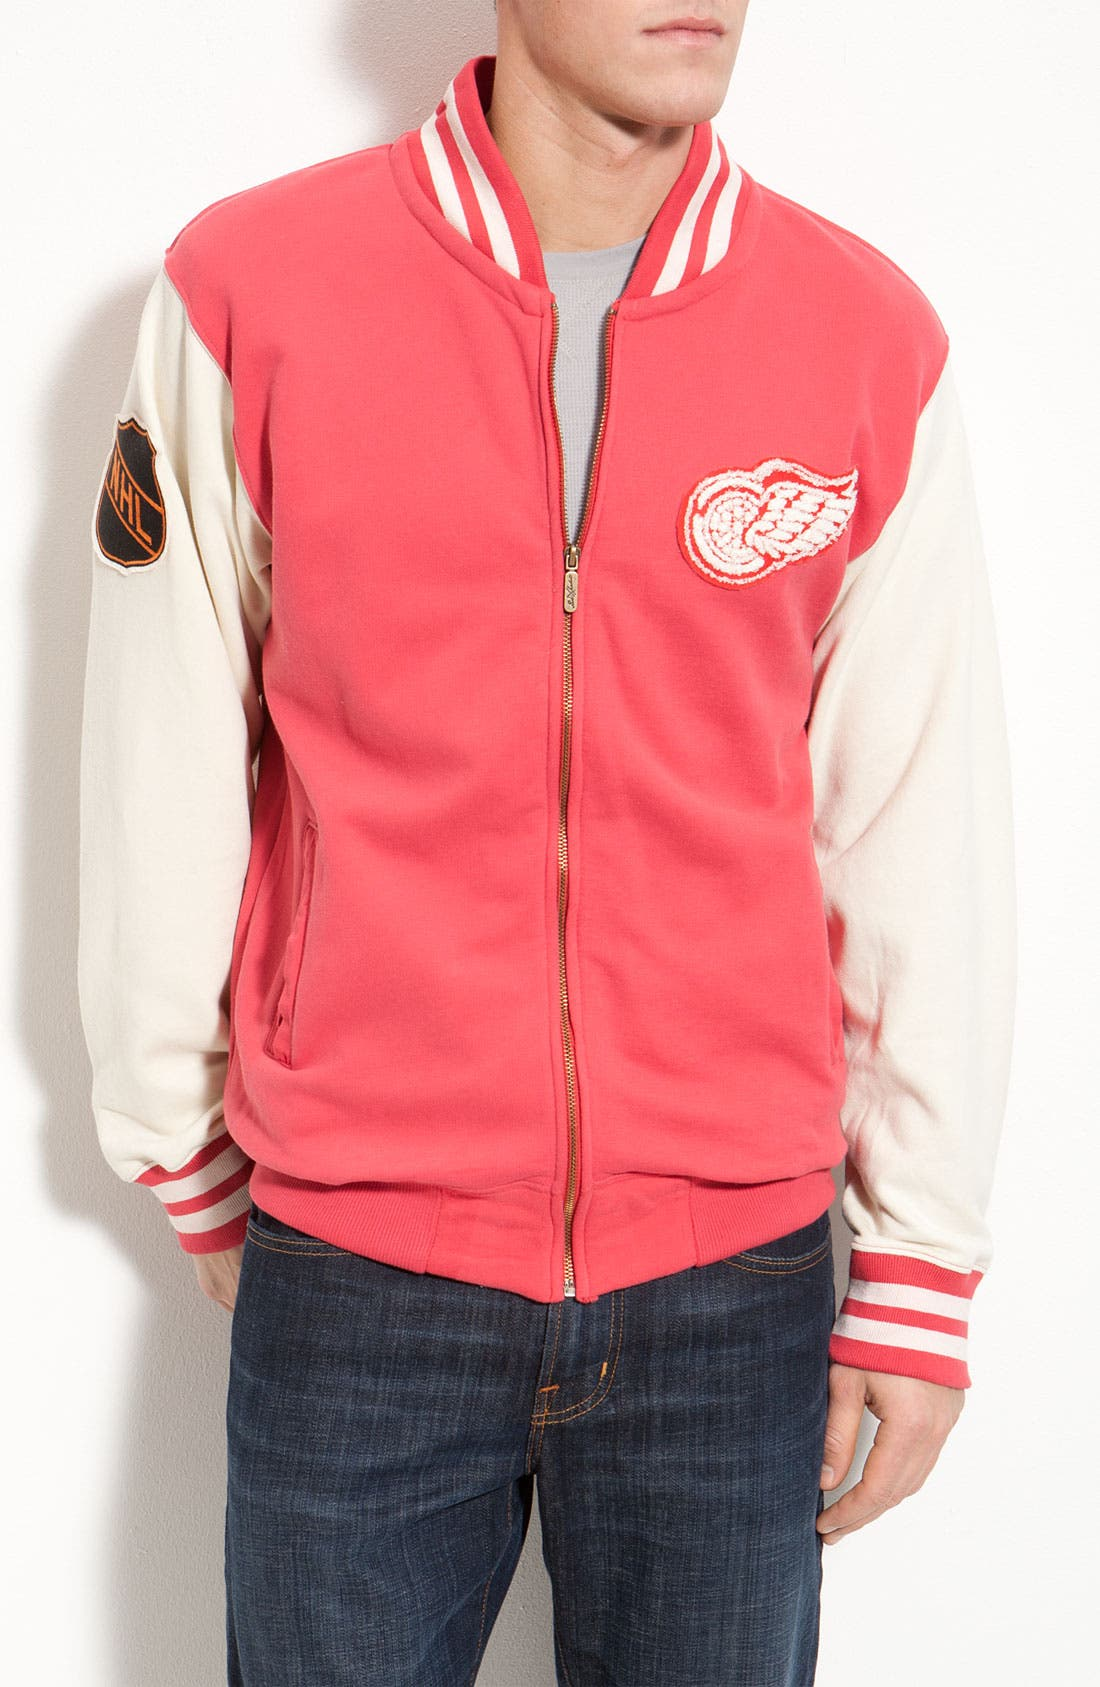 Alternate Image 1 Selected - Red Jacket 'Homeroom Red Wings' Jacket